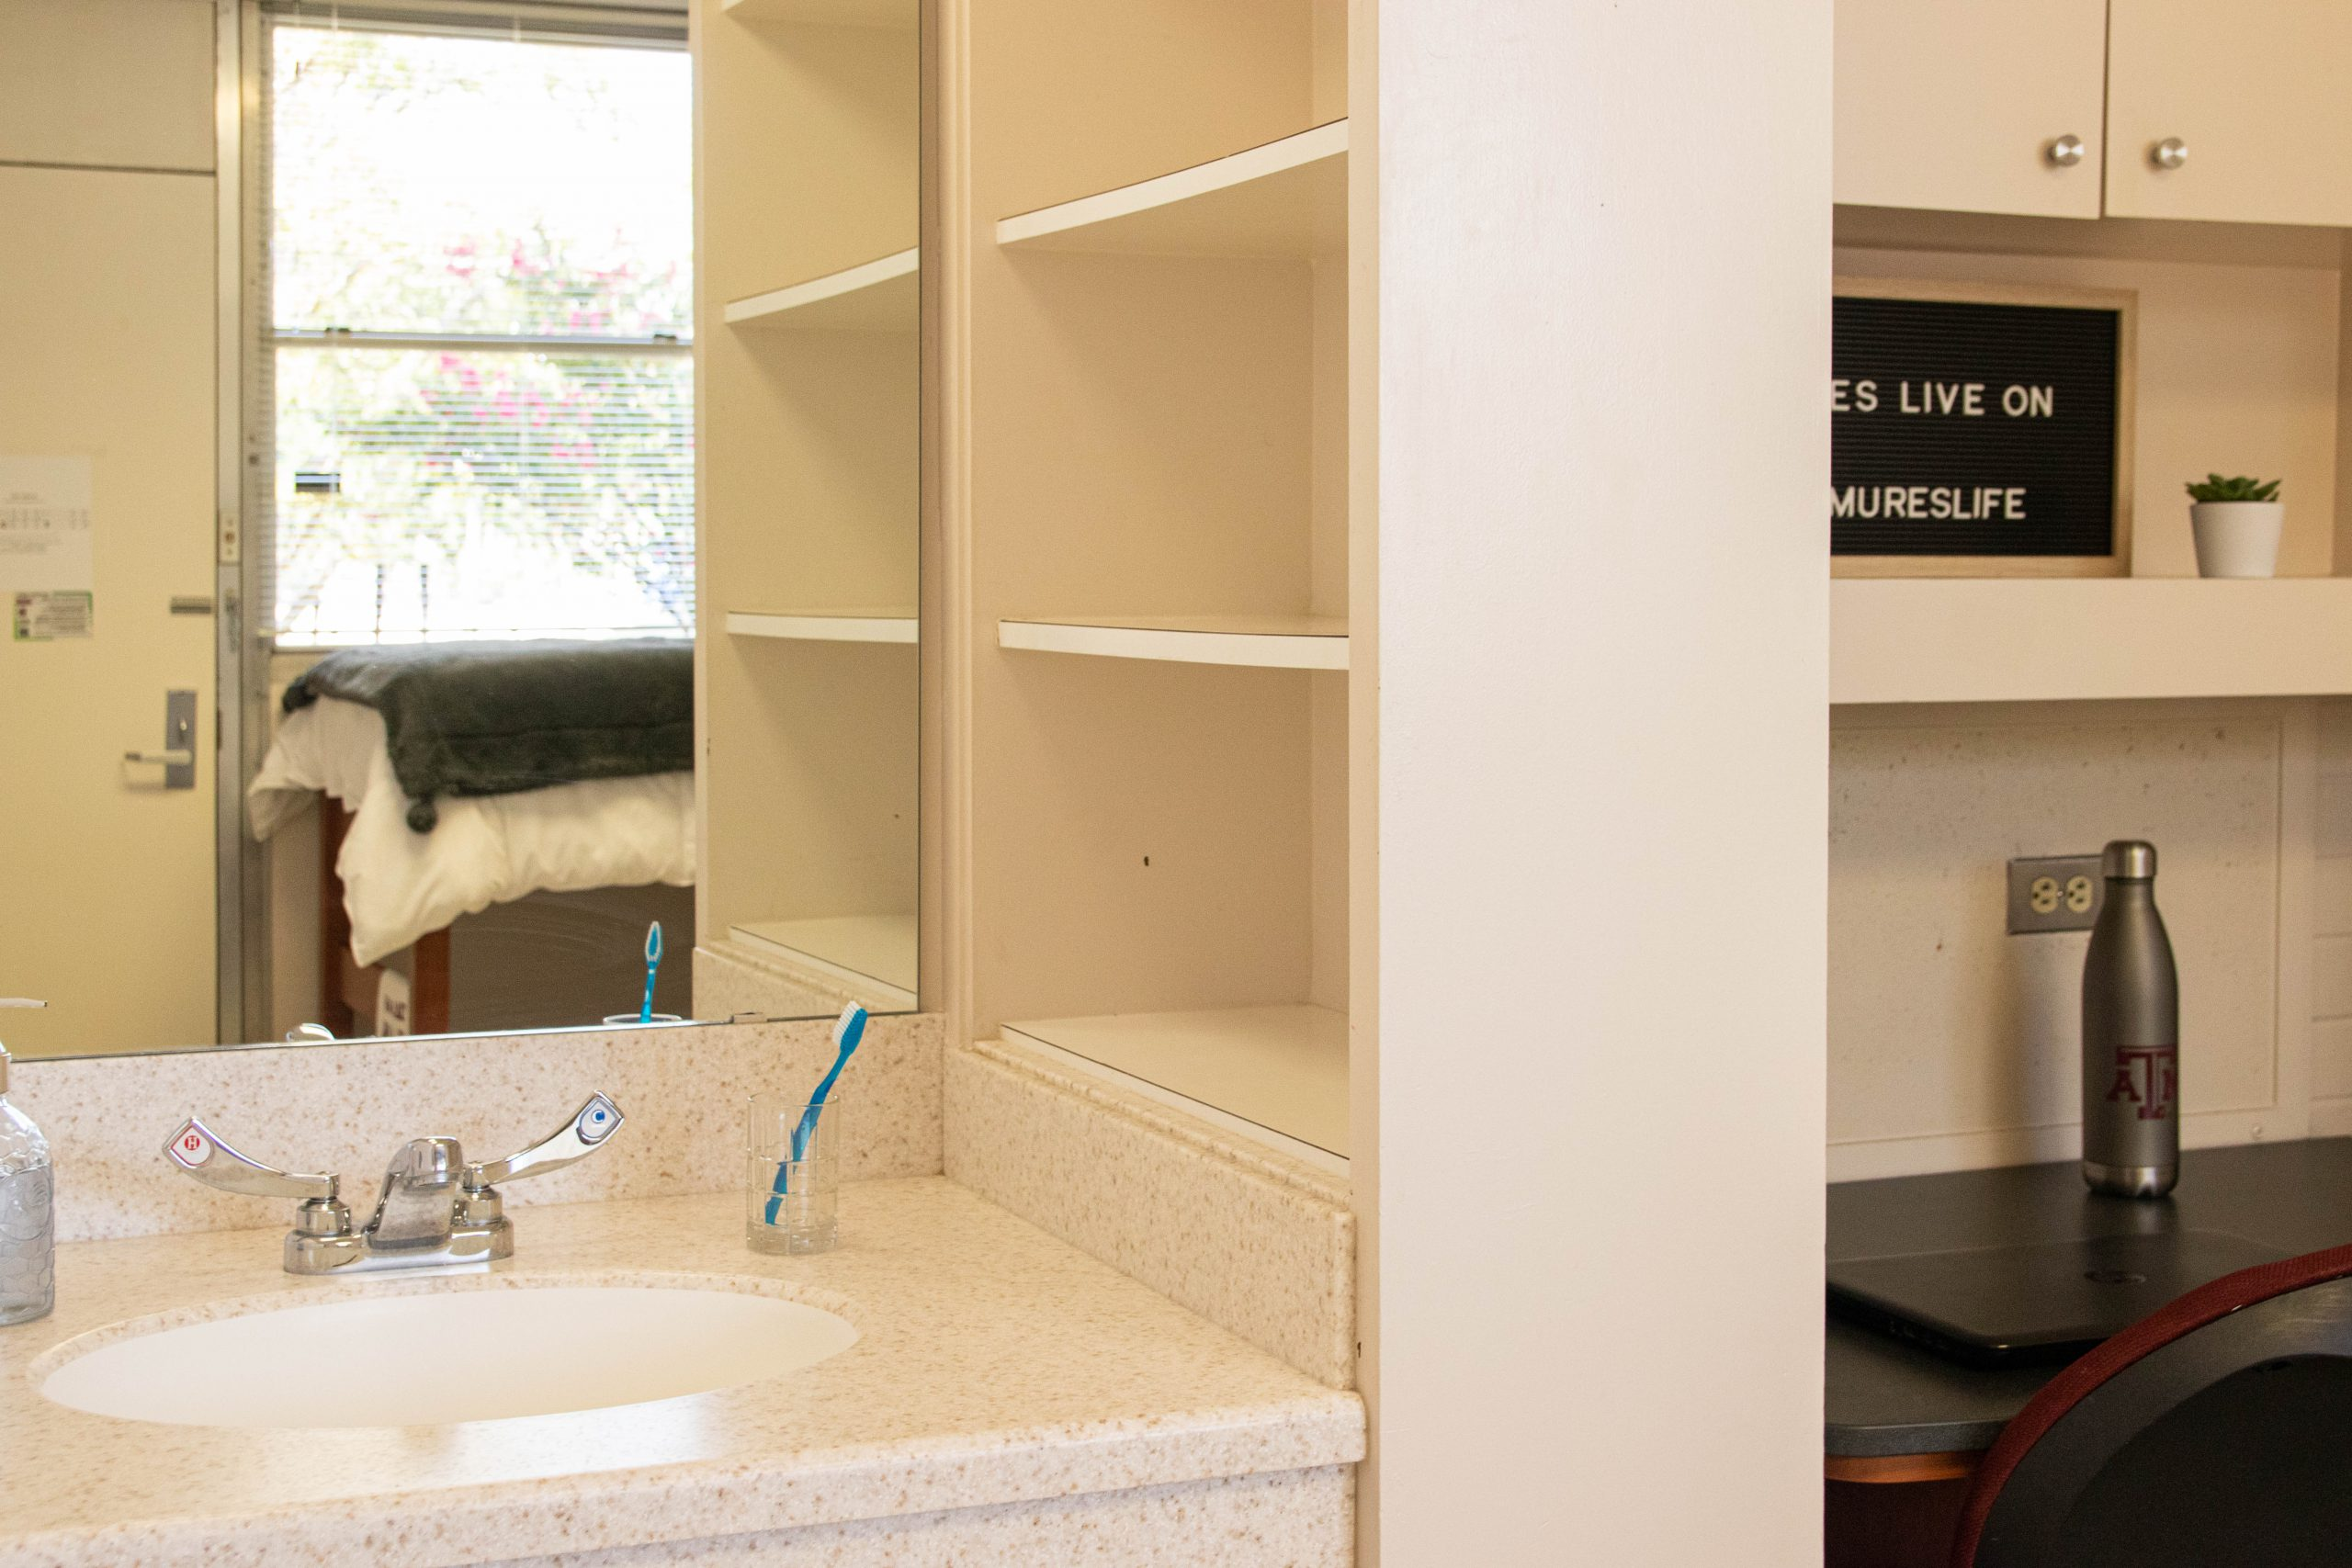 Mirror, Sink, and sink cabinet